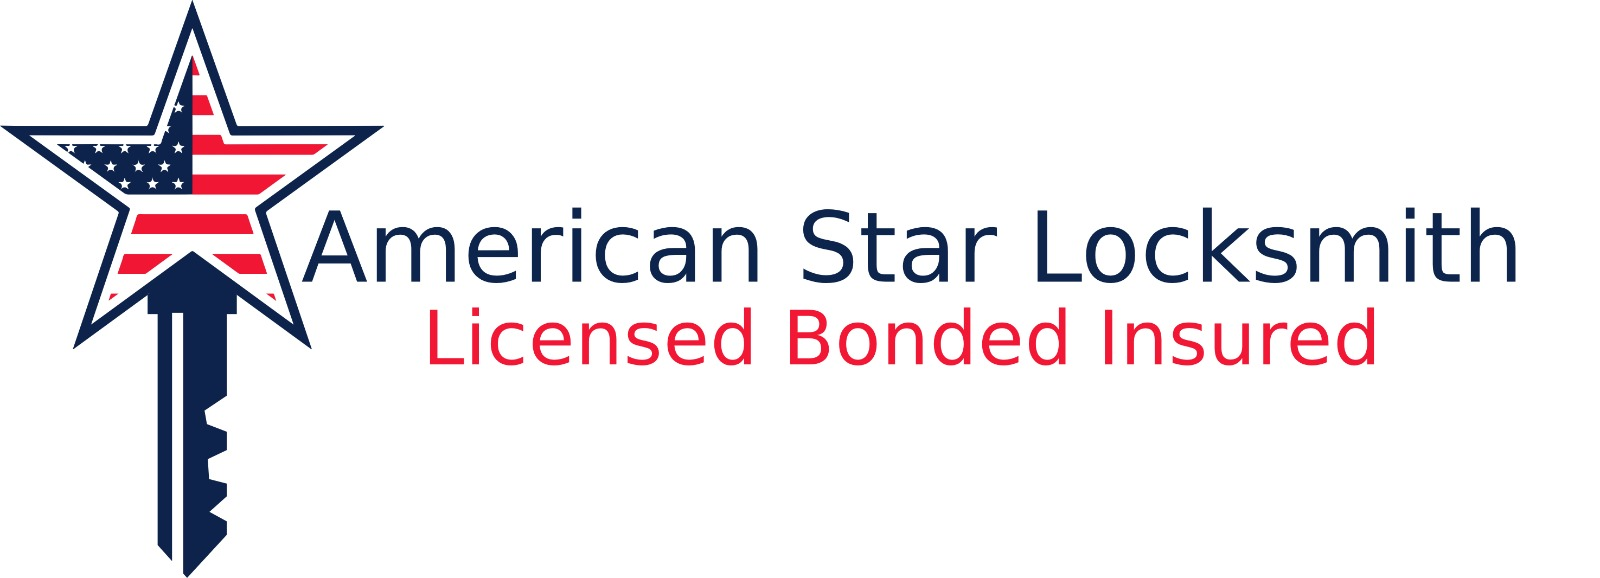 american star locksmith